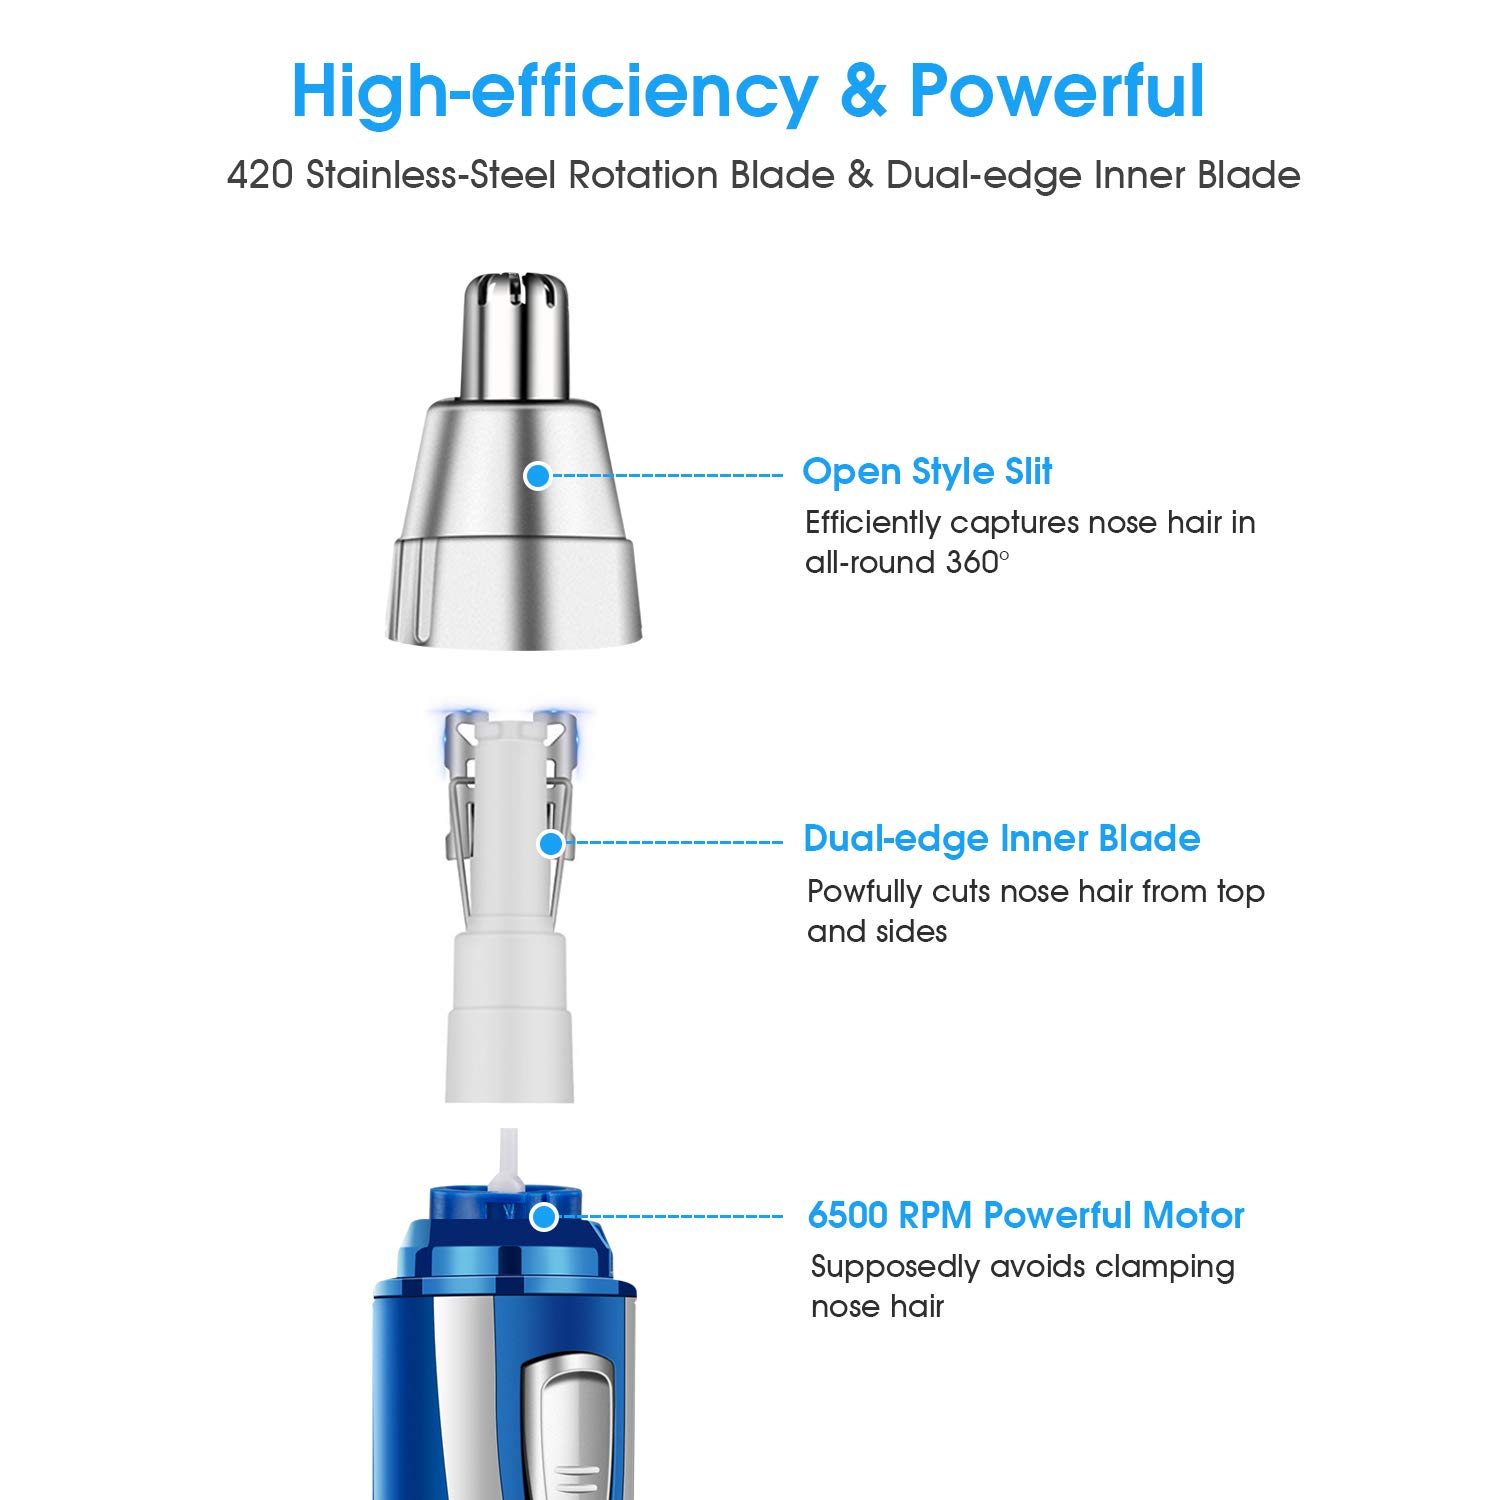 Tobeape Mute Design Nose Trimmer and Ear Hair Trimmer for Men Women, Wet/Dry Nose Hair Clippers Painless Trimming with Dual Edge Blades & Vacuum Cleaning System